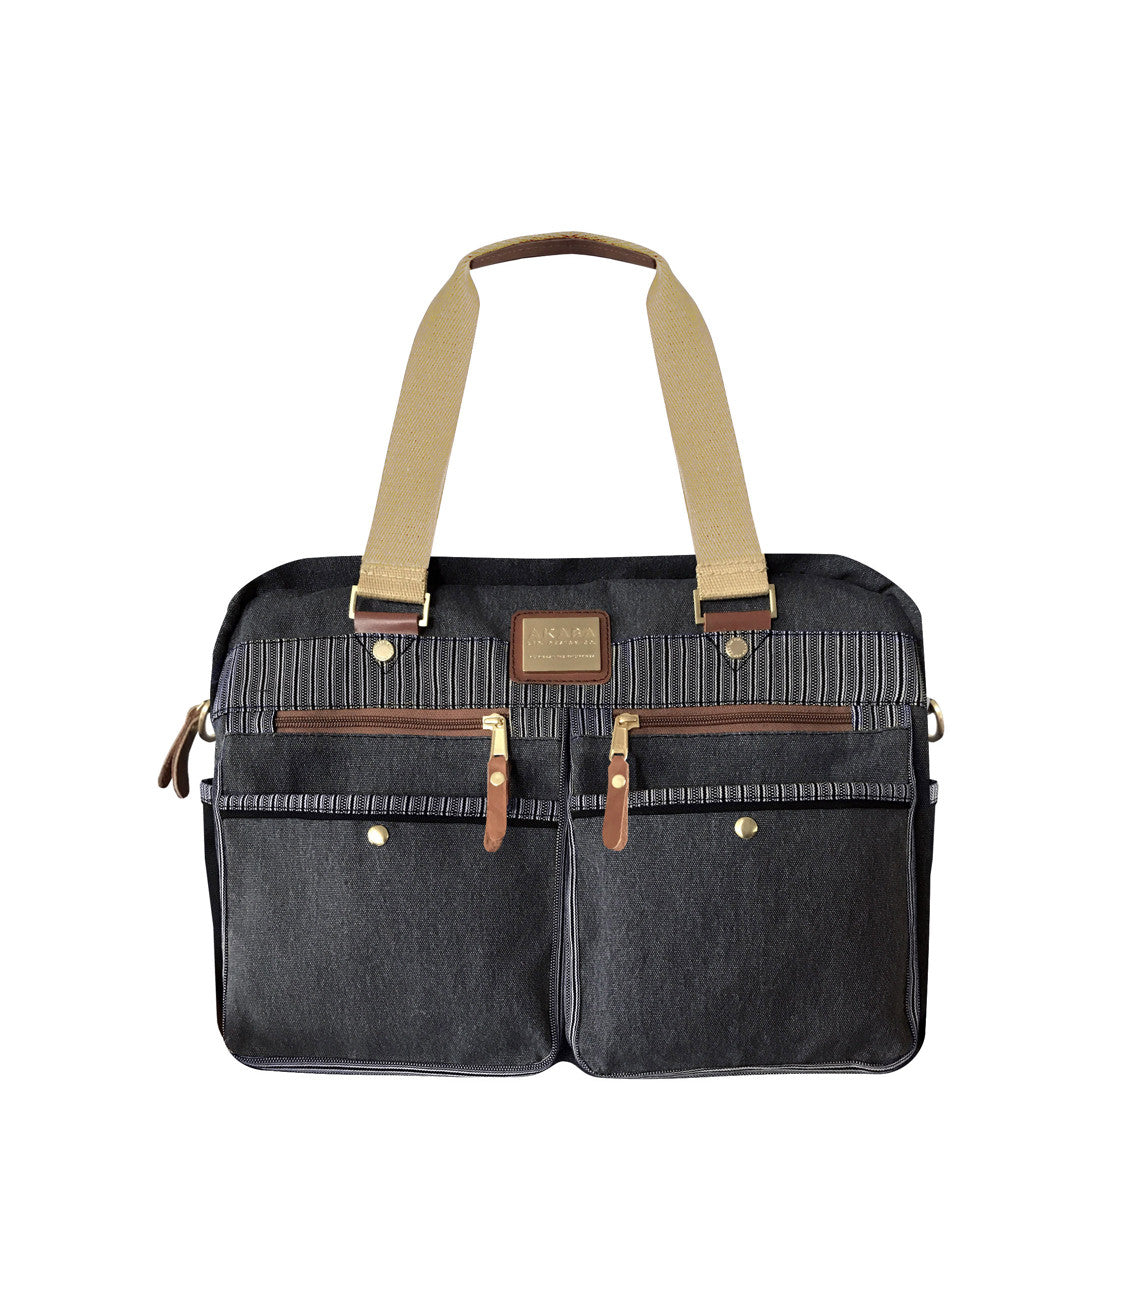 AKABA - Tercero Cargo Boston Duffle Bag Black Front